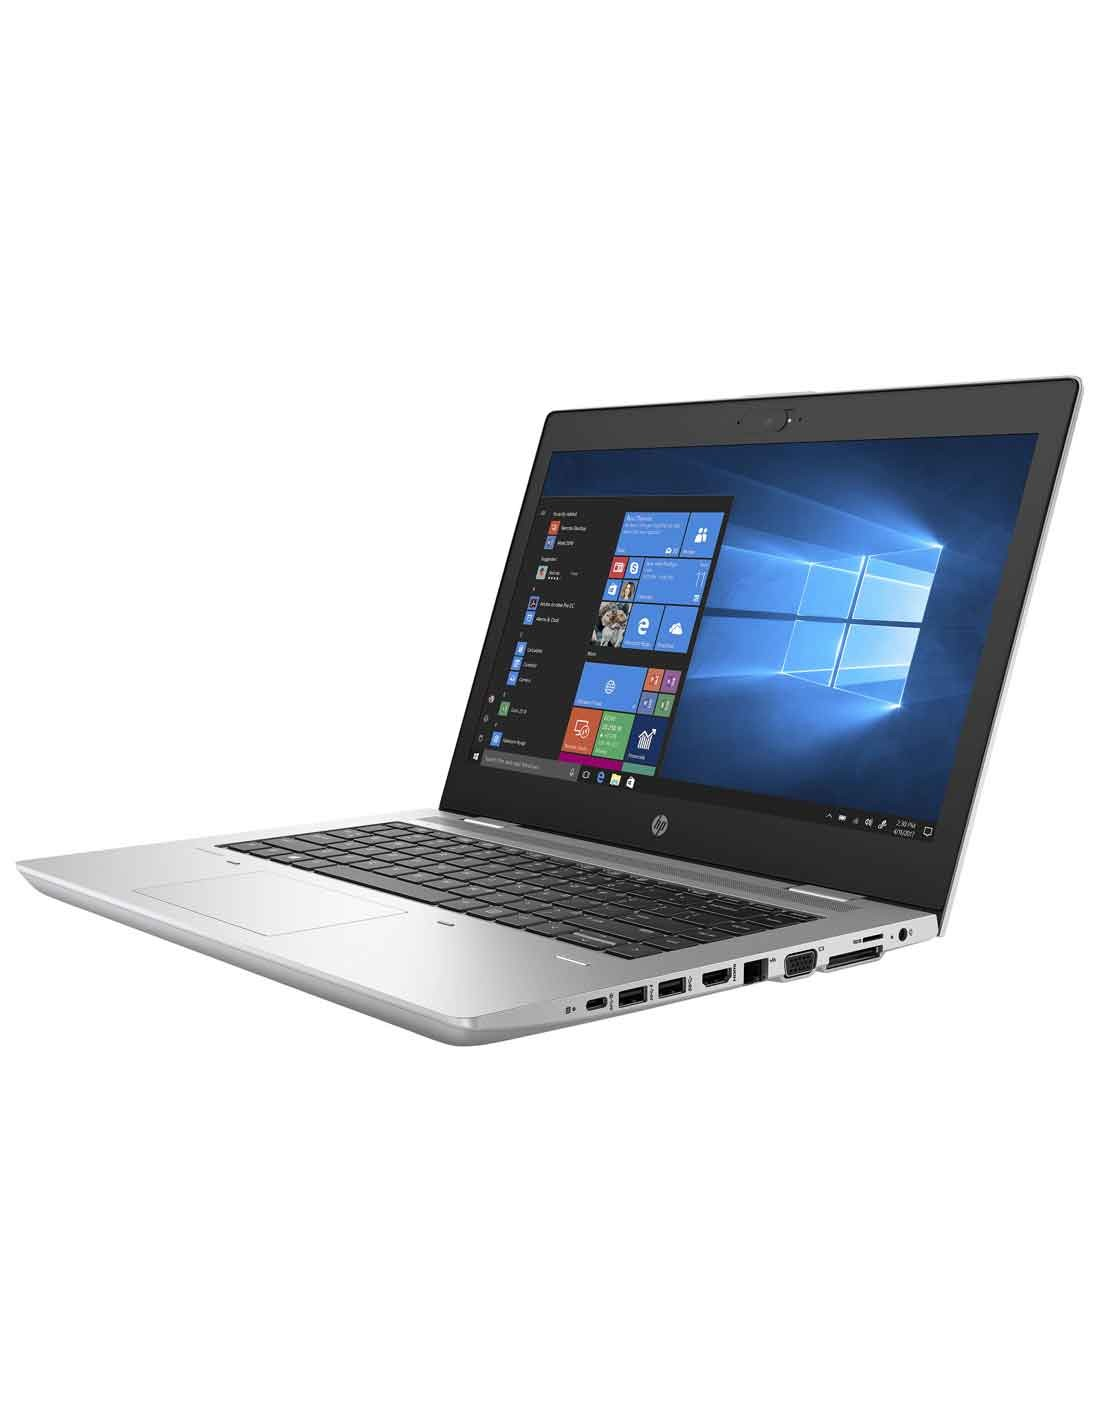 HP ProBook 640 G4 Notebook i5 at the cheapest price in Dubai Online Shop